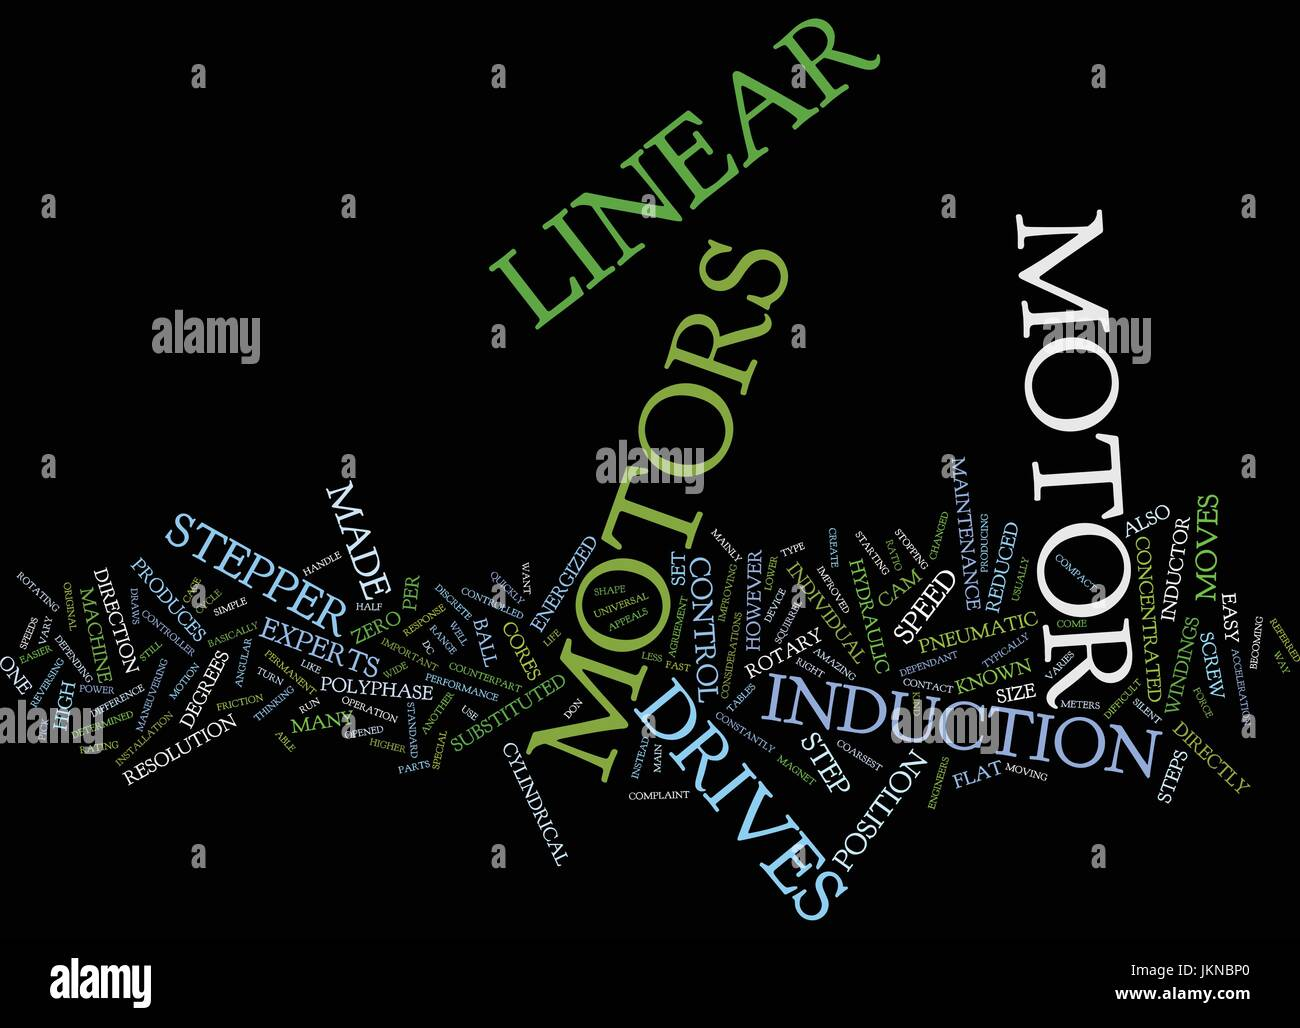 LINEAR MOTORS AND STEPPER MOTORS Text Background Word Cloud Concept - Stock Vector